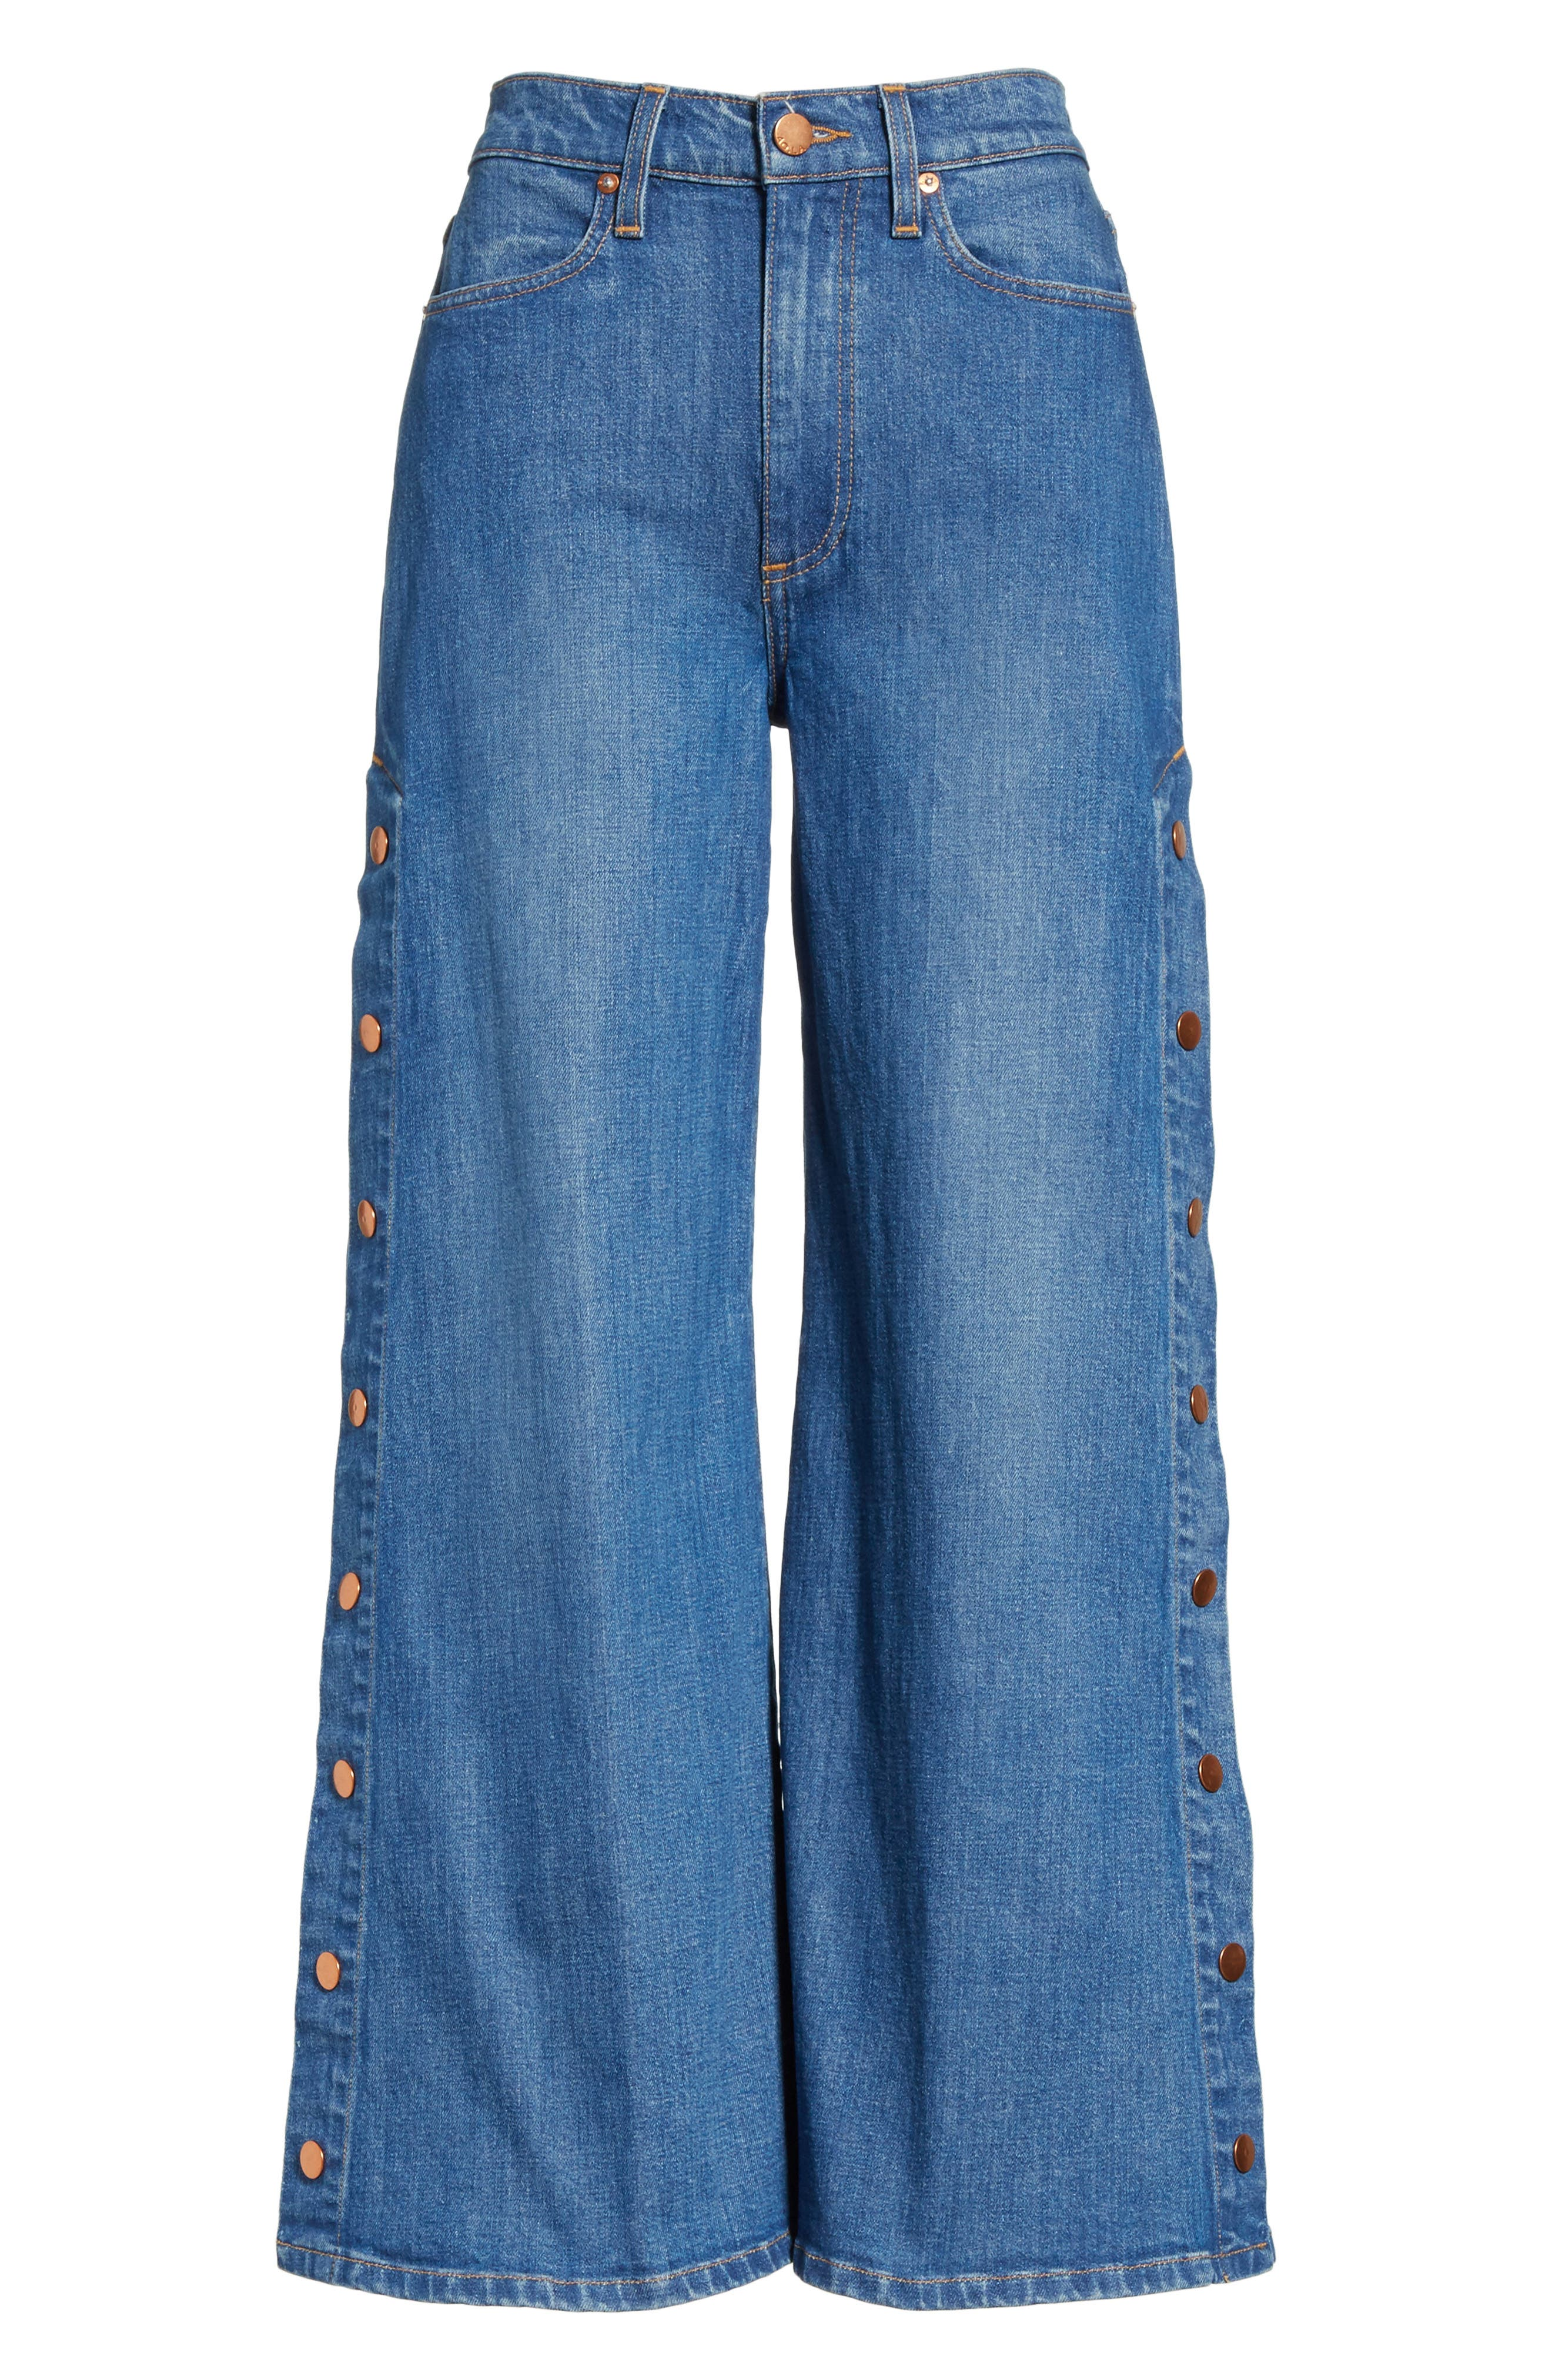 AO.LA Gorgeous Snap Side Crop Flare Jeans,                             Alternate thumbnail 6, color,                             French Blue